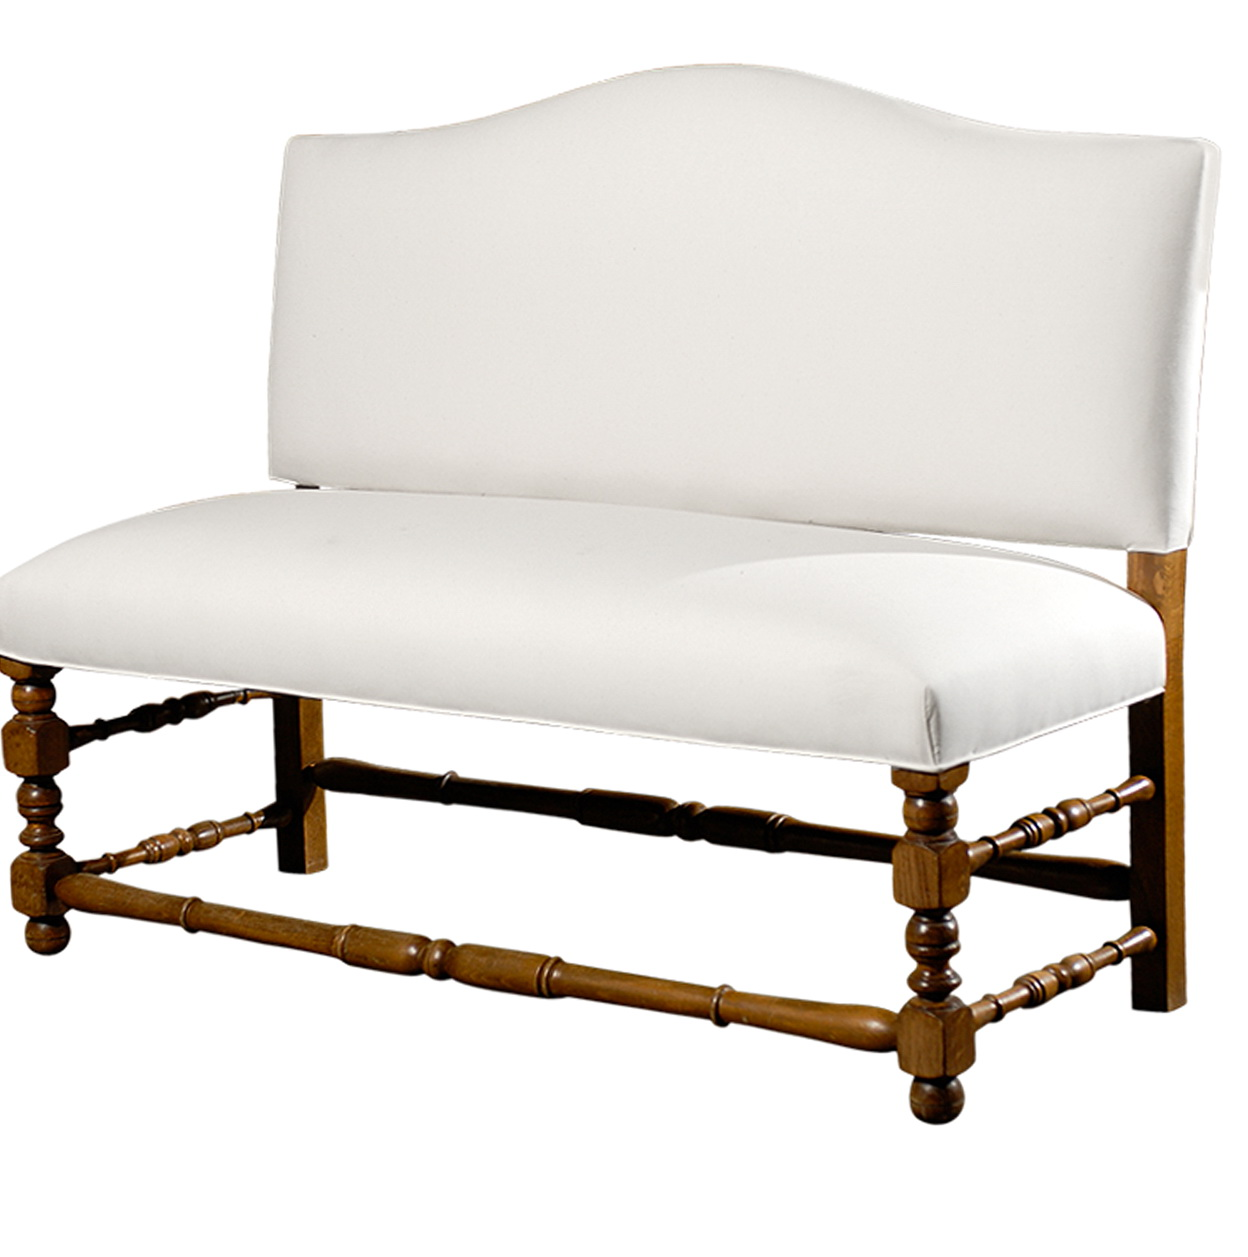 Upholstered Bench With Back Dining